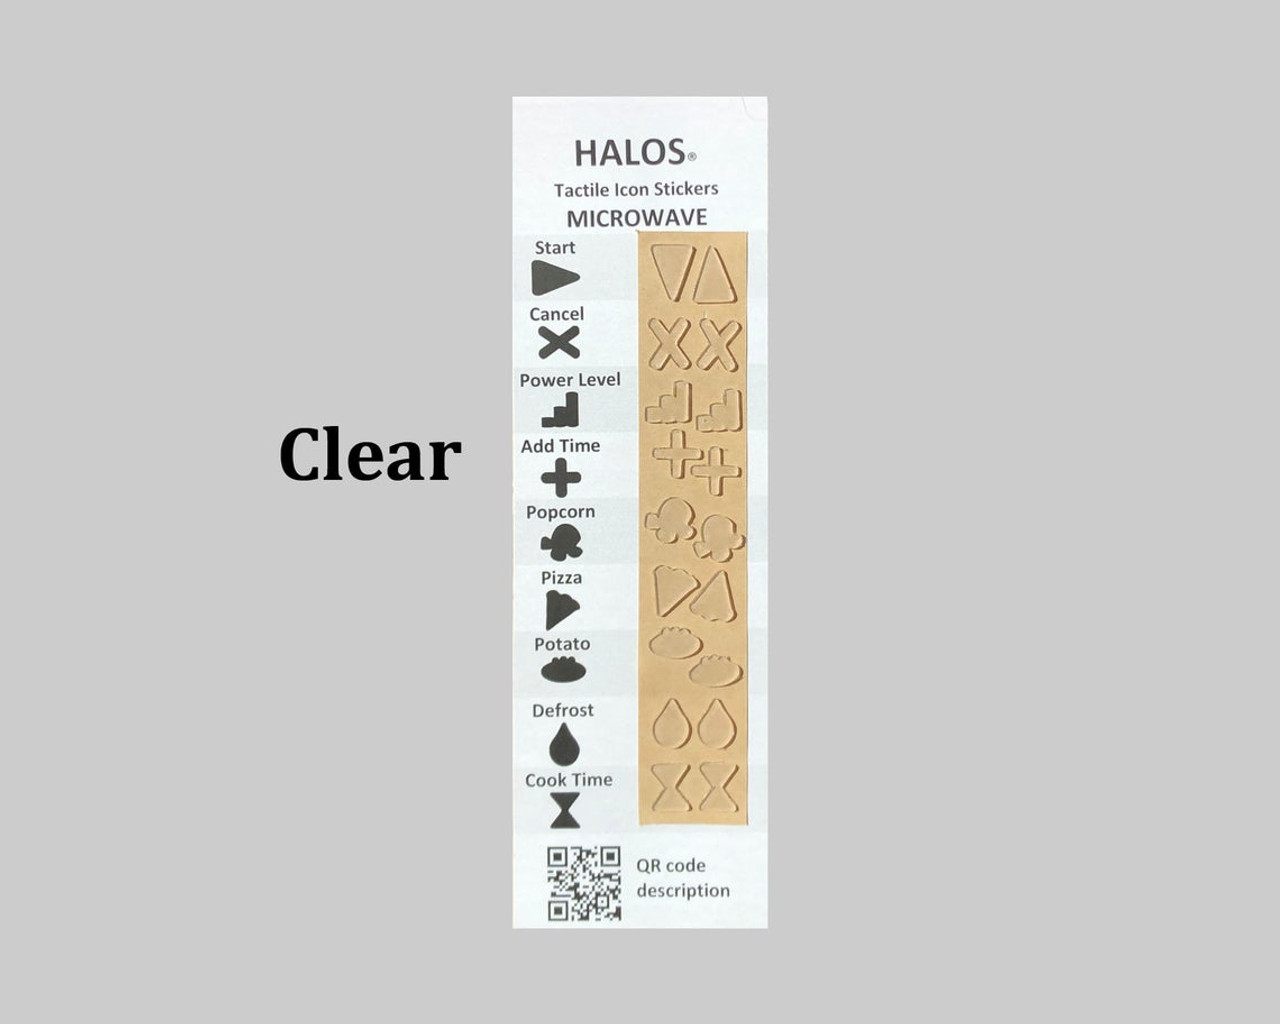 HALOS Clear Tactile Microwave Stickers